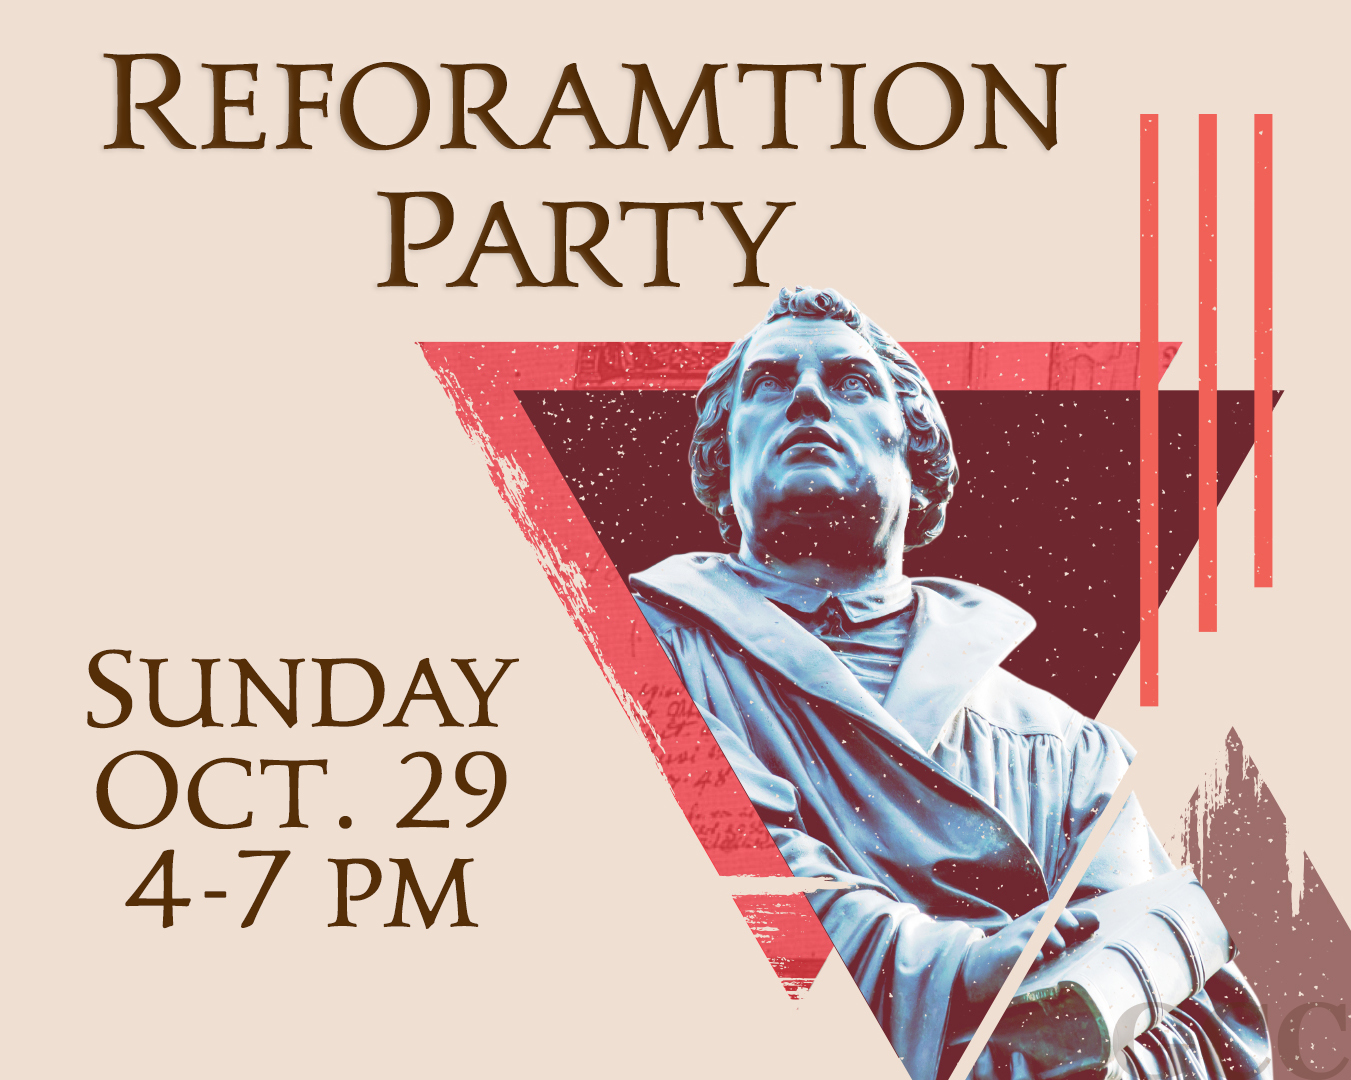 reformation party image